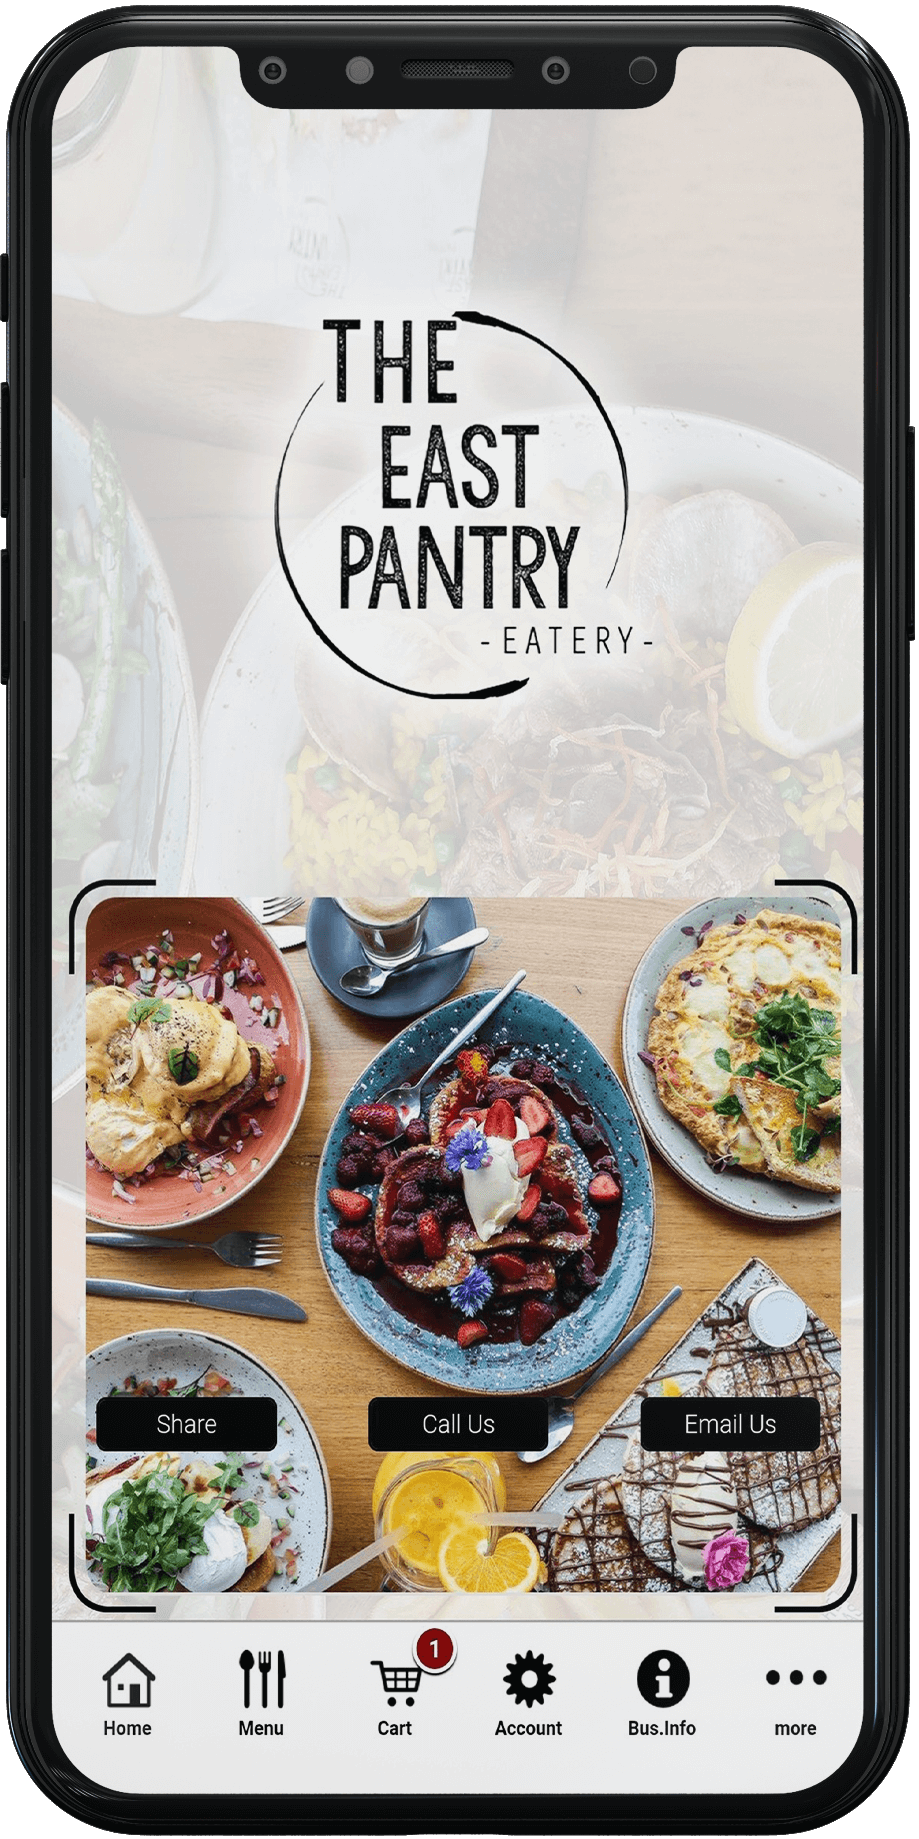 The-East-Pantry-Home-Page